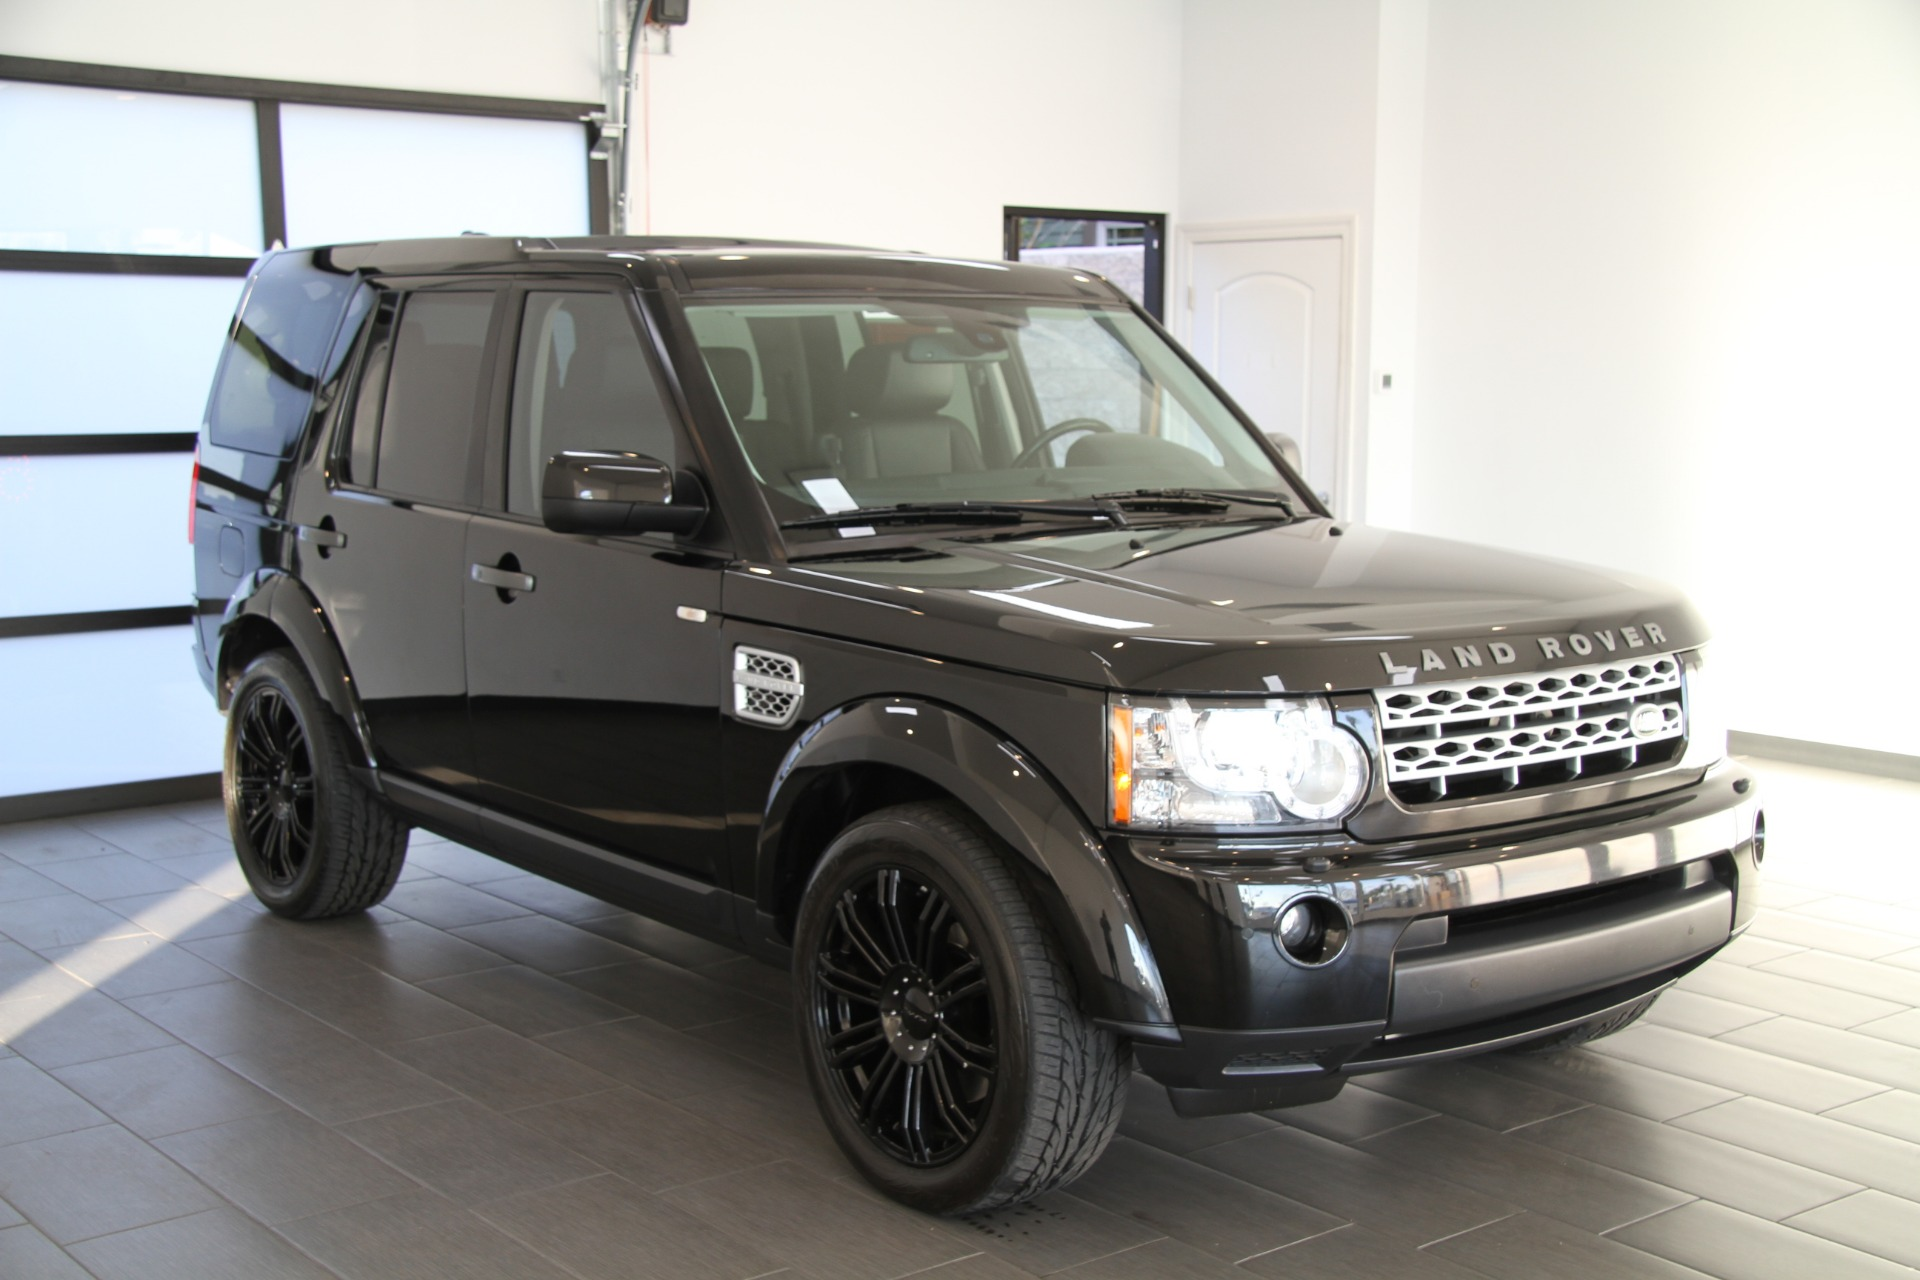 Land Rover For Sale Near Me >> 2012 Land Rover LR4 HSE LUXURY Stock # 6054A for sale near ...